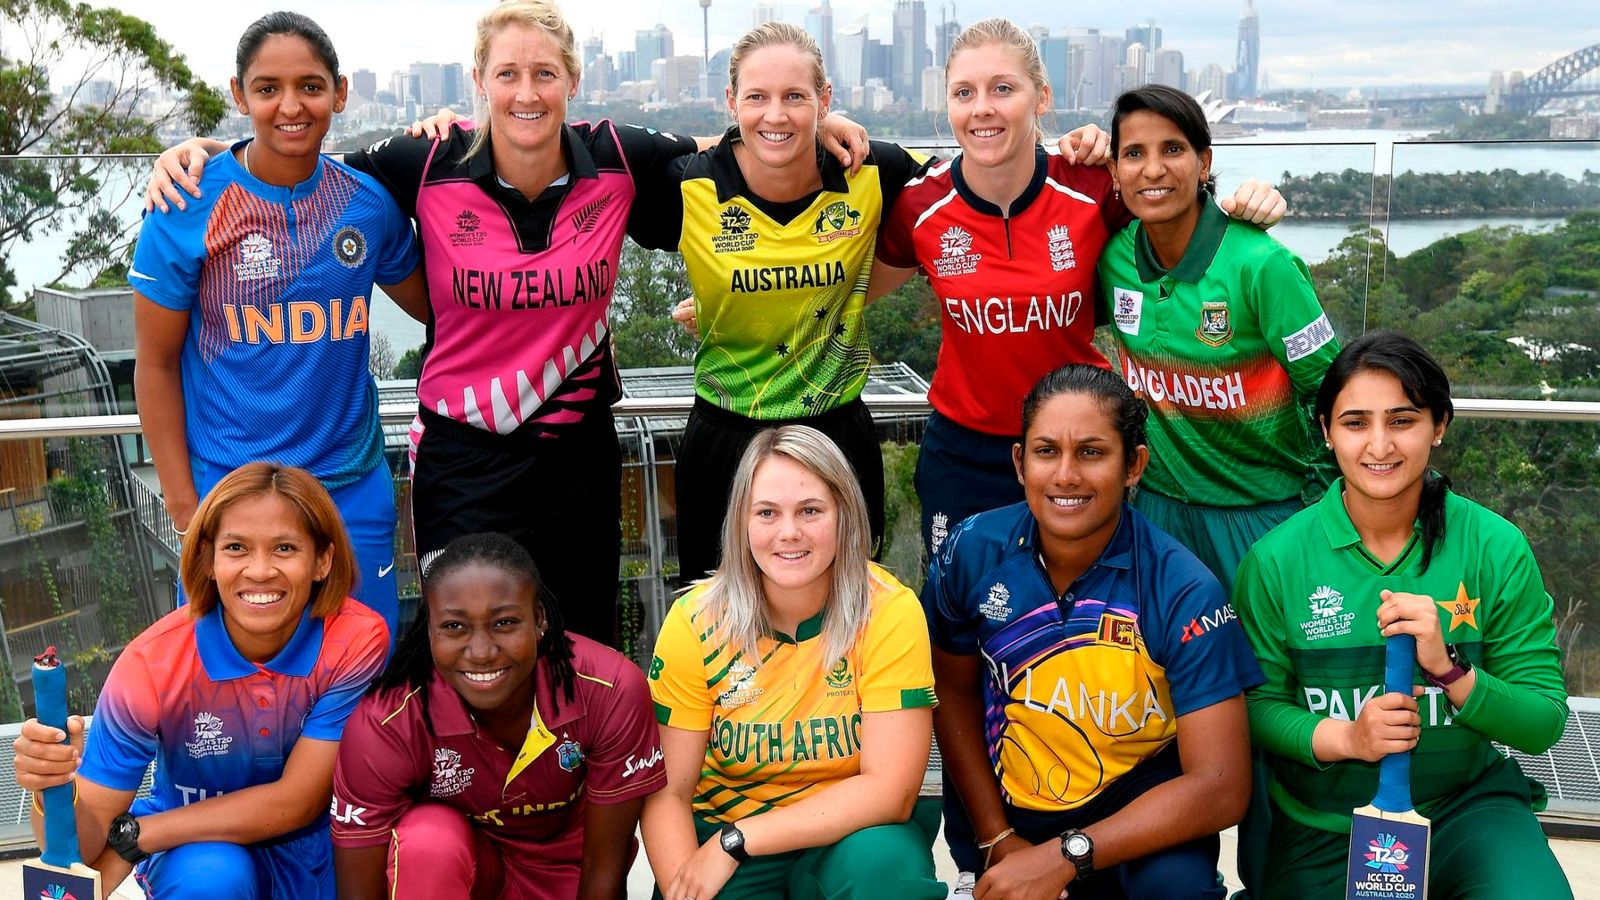 Australia (Runner-Up In 2016 Finals) Hoping To Retain ICC Women's World Twenty20 title